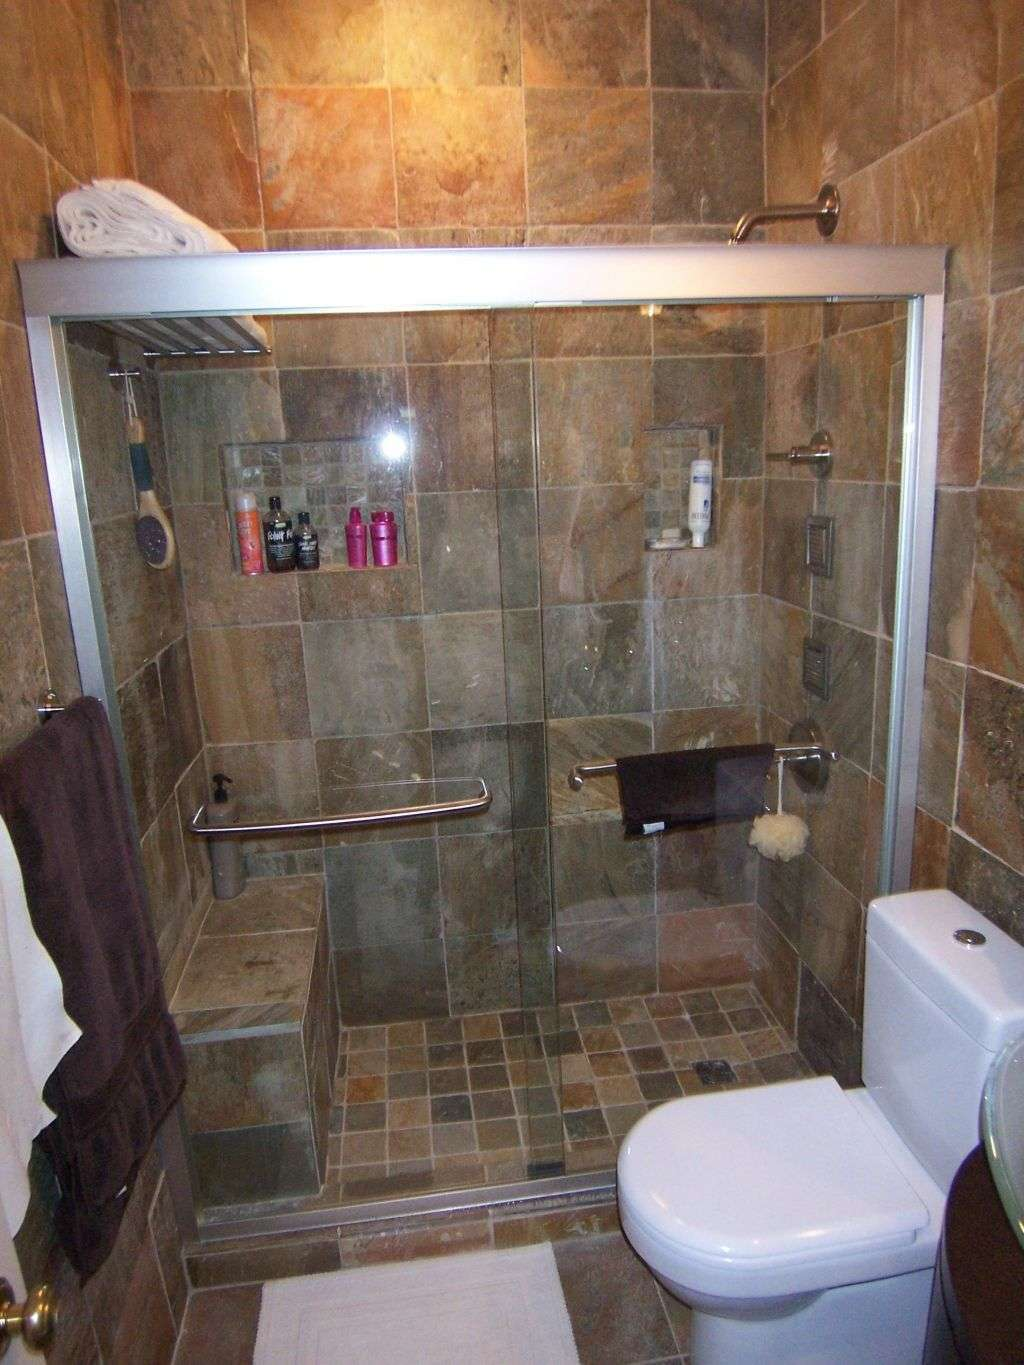 40 wonderful pictures and ideas of 1920s bathroom tile designs for Bathroom remodel ideas